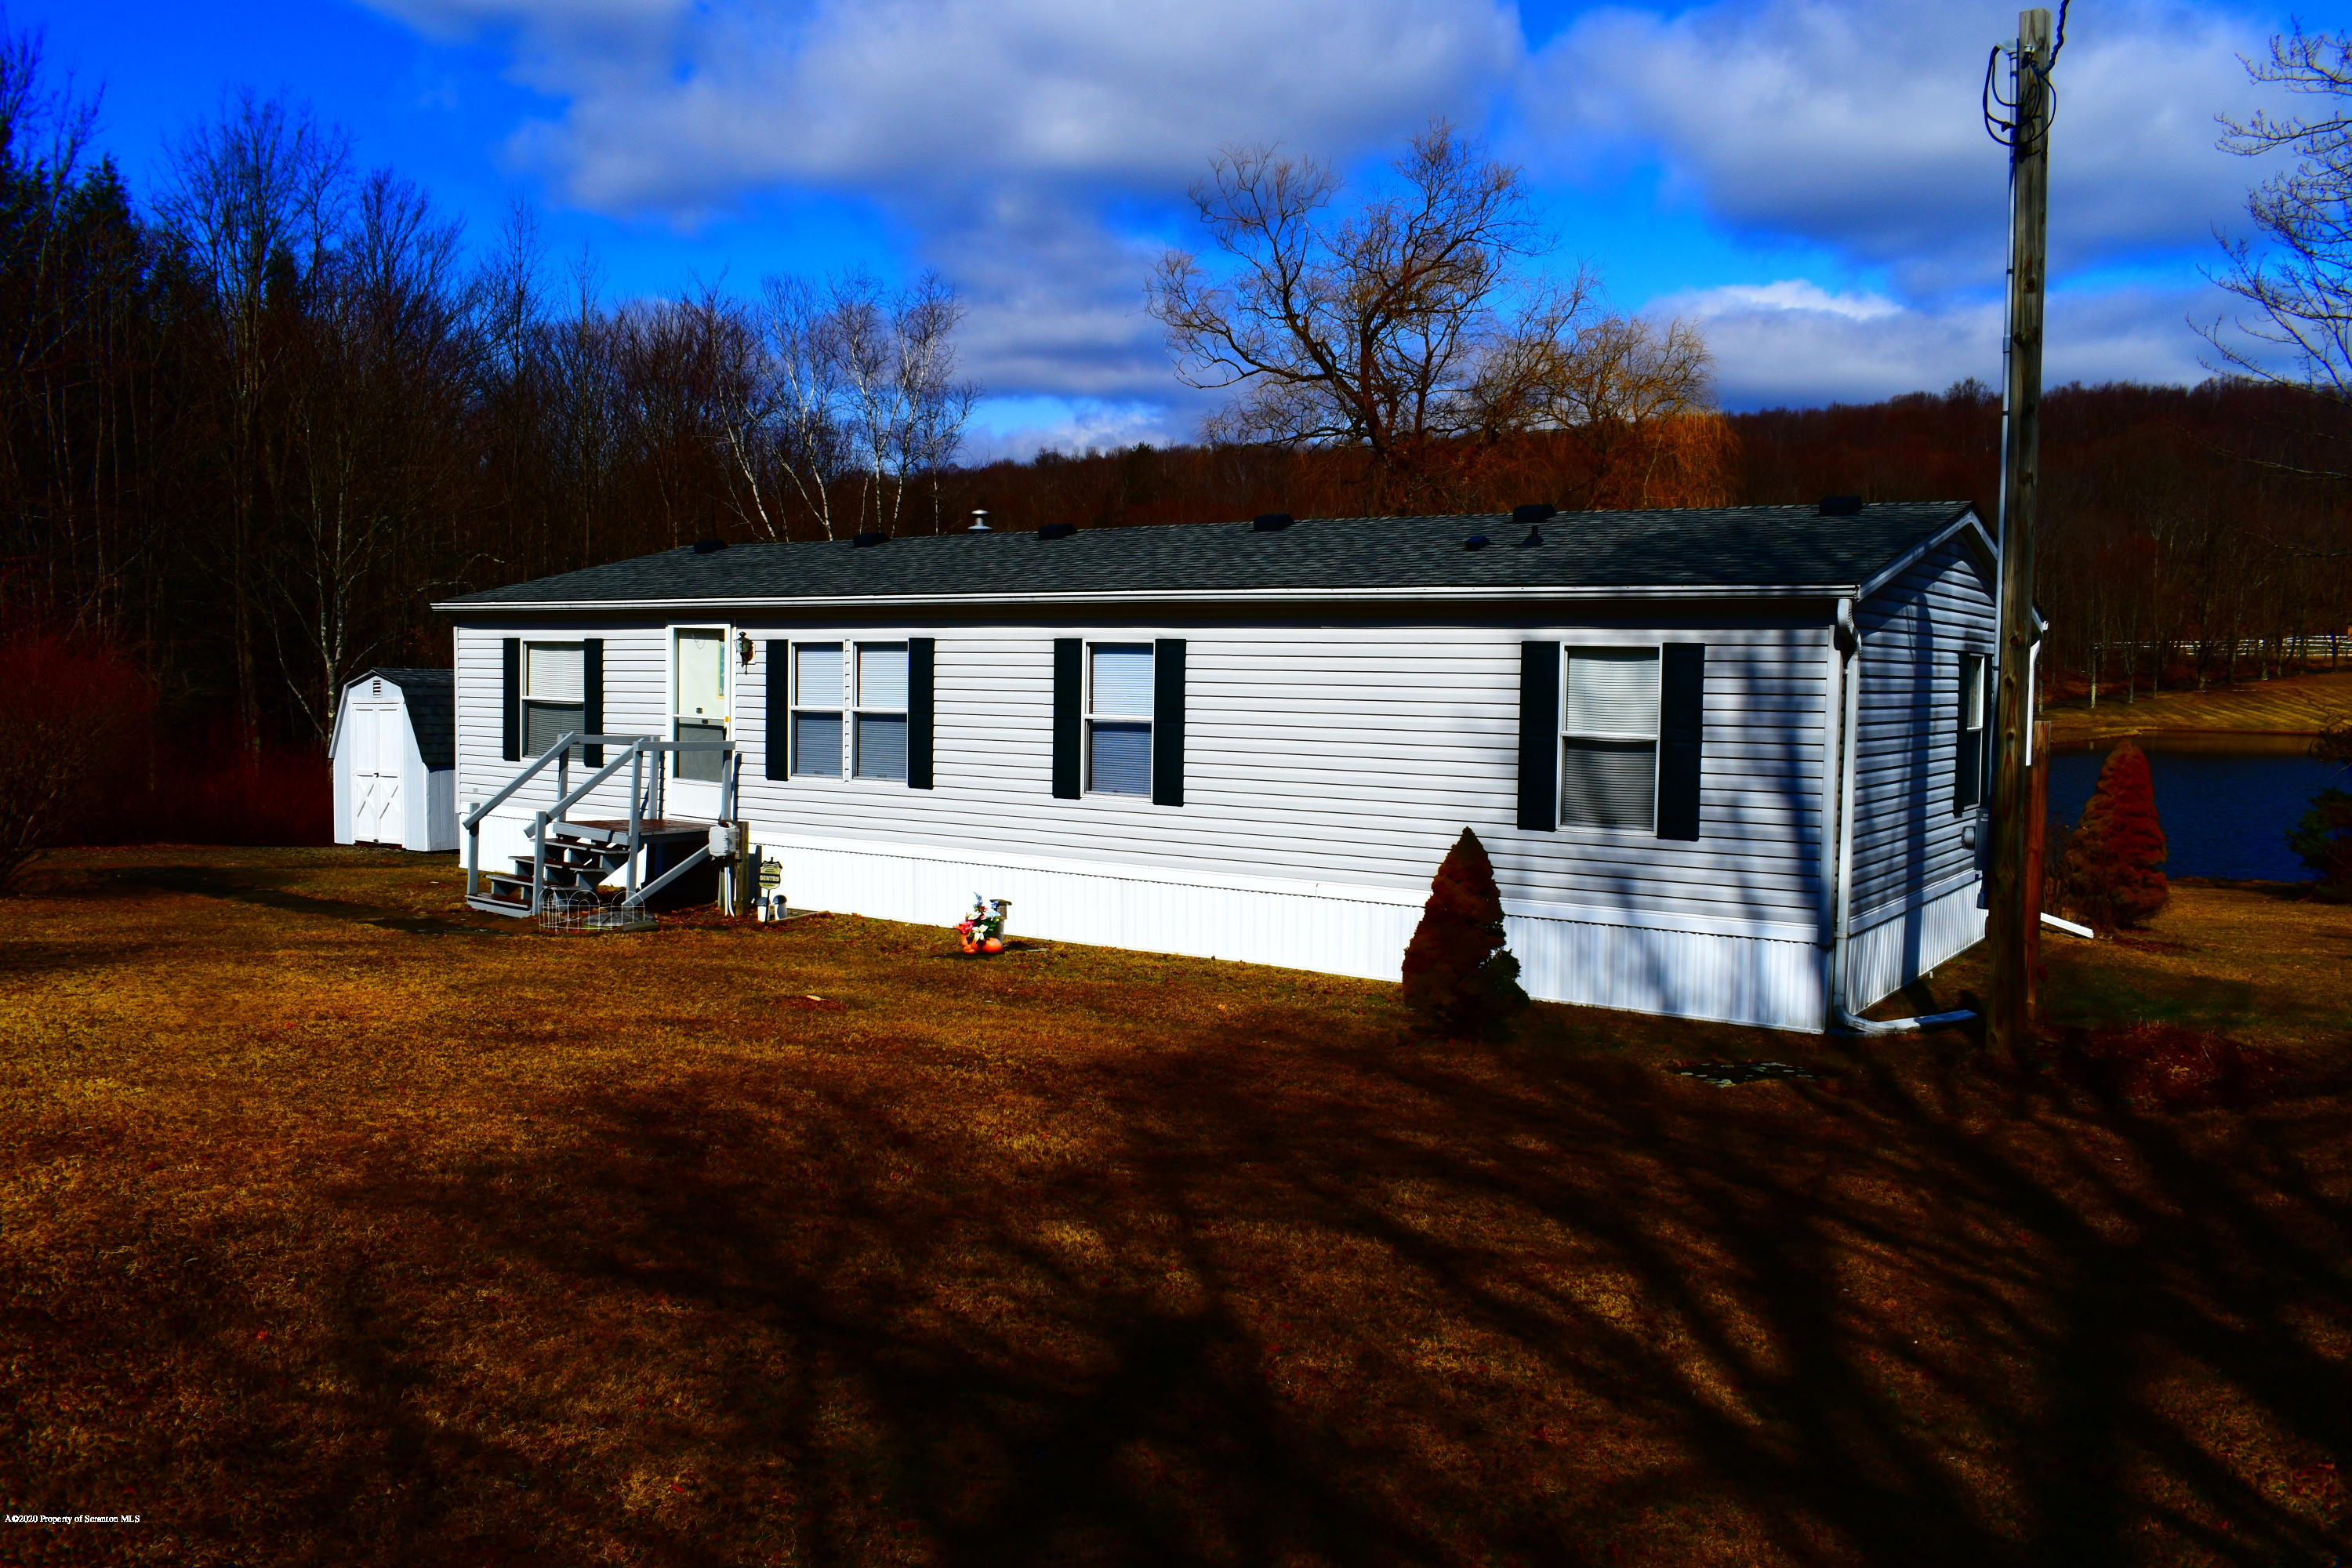 595 Raylean Road, Montrose, Pennsylvania 18801, 3 Bedrooms Bedrooms, 6 Rooms Rooms,2 BathroomsBathrooms,Single Family,For Sale,Raylean Road,20-1142